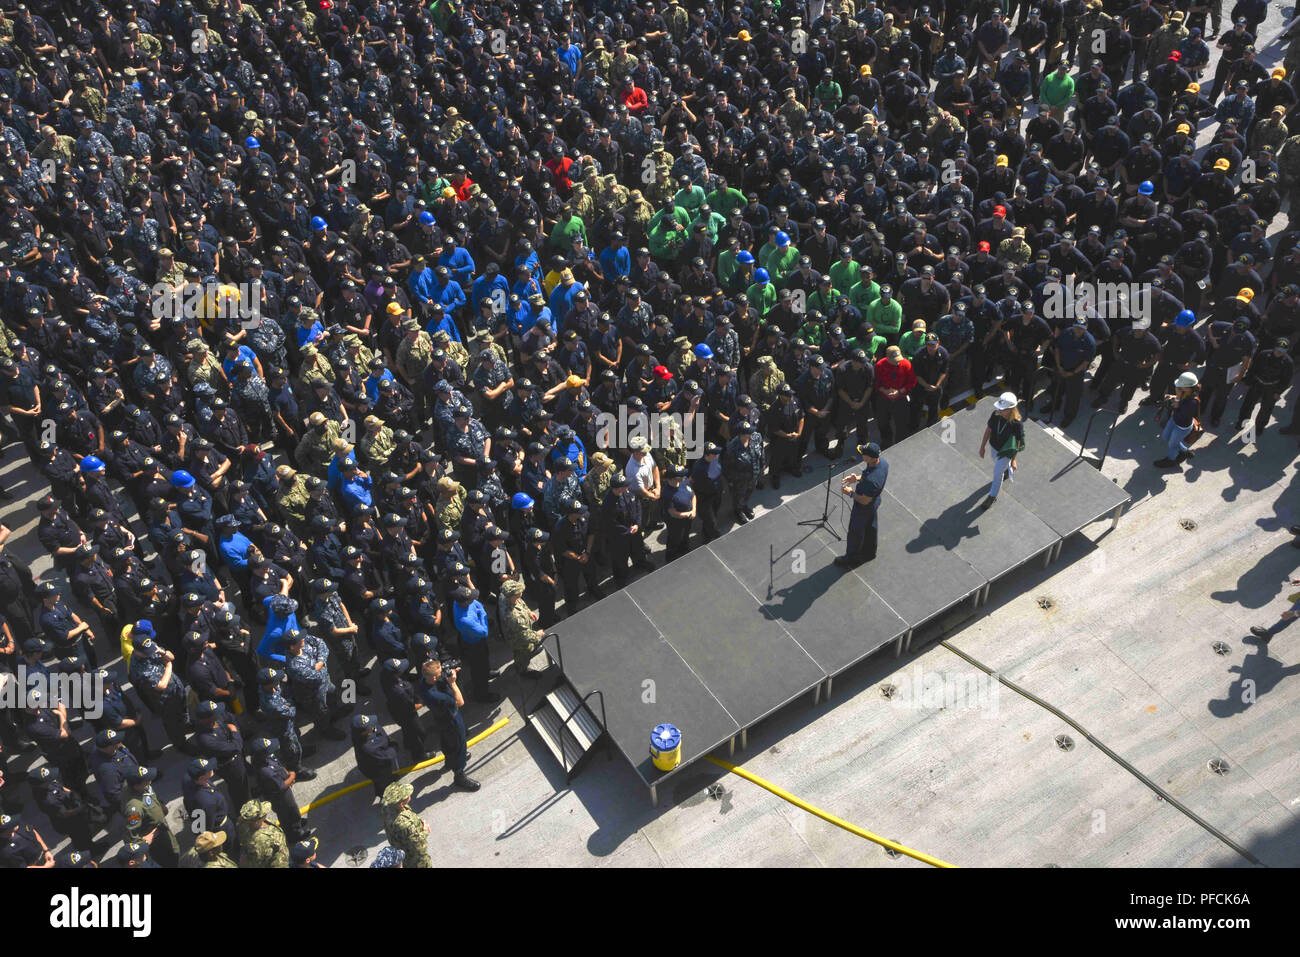 Norfolk Naval Shipyard Stock Photos & Norfolk Naval Shipyard Stock ...